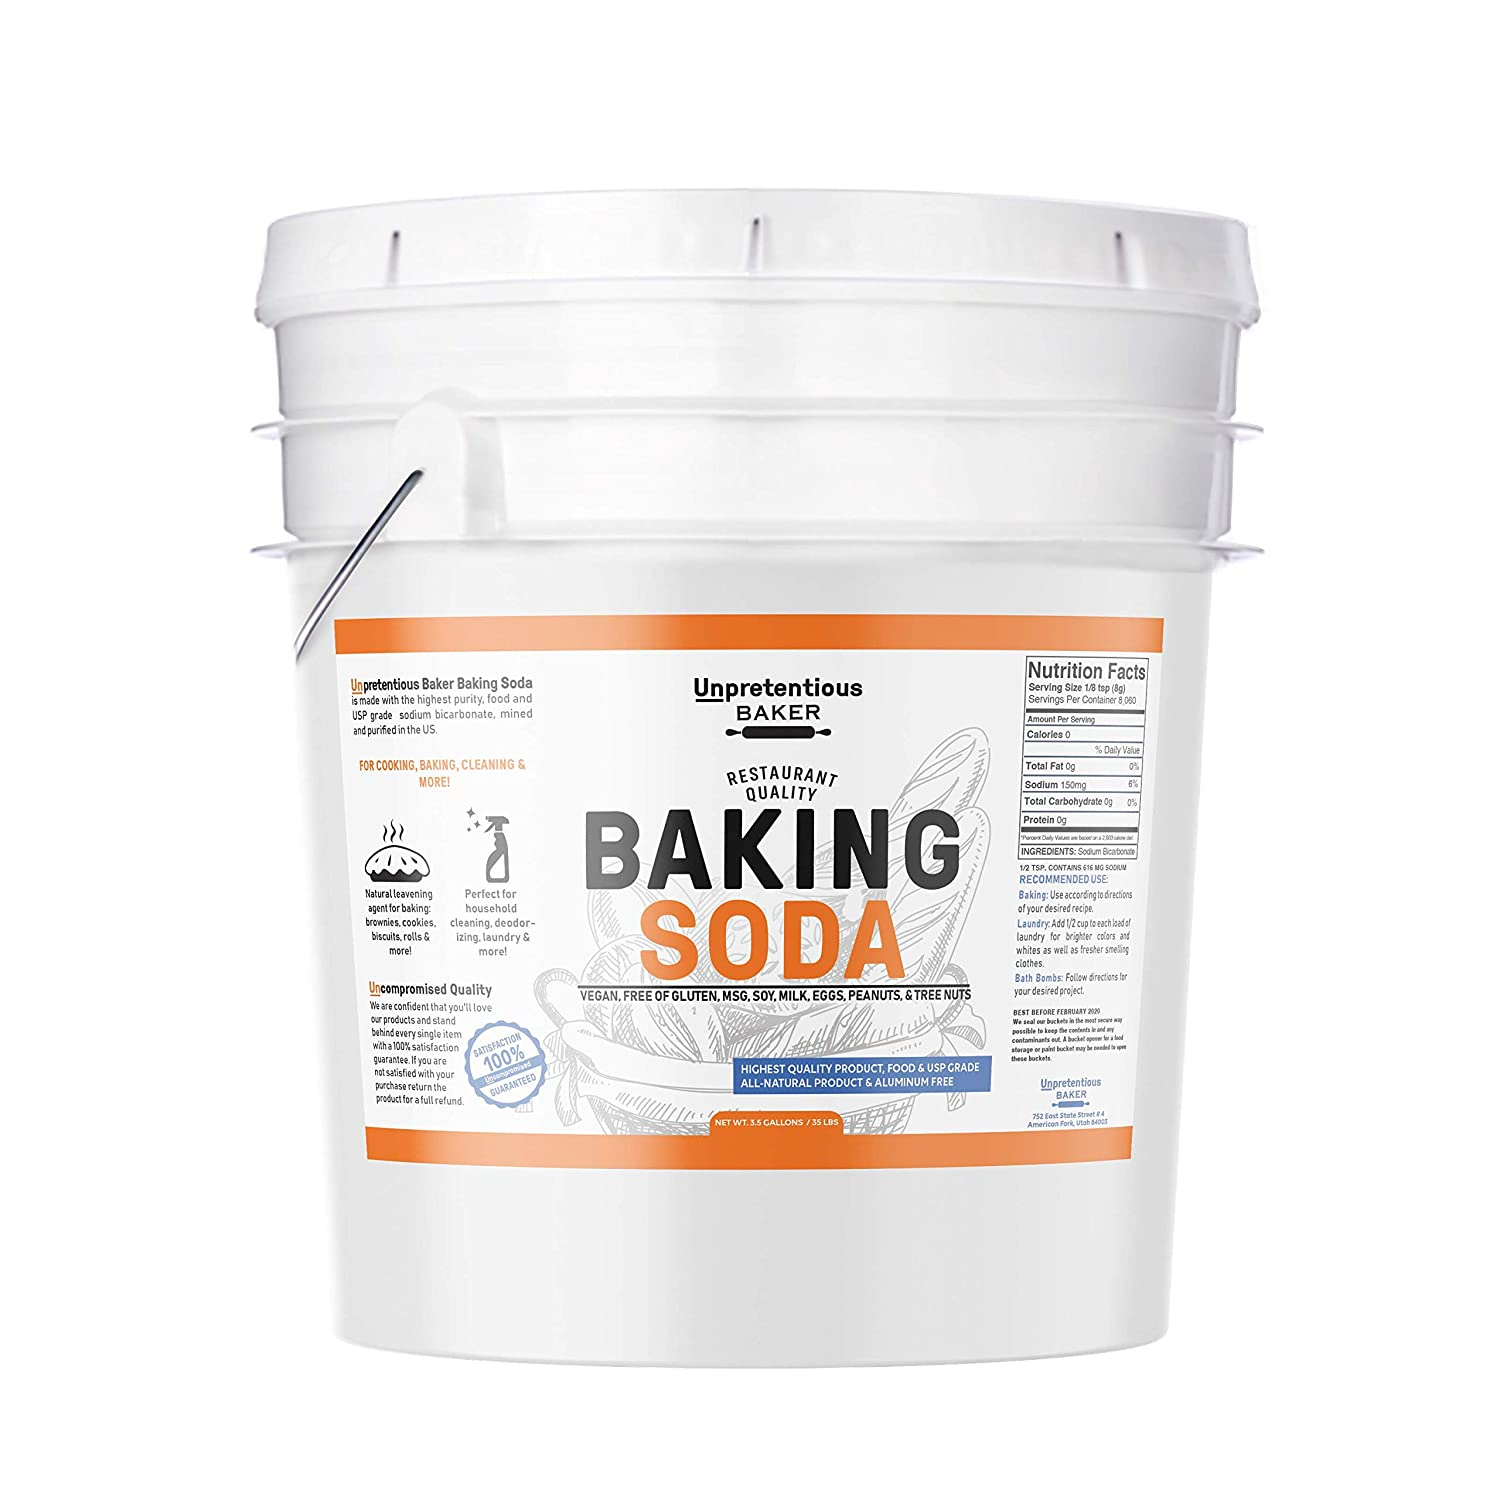 Who Won Best Baker In America 2020 Amazon.: Baking Soda (Sodium Bicarbonate) (5 gallon) by